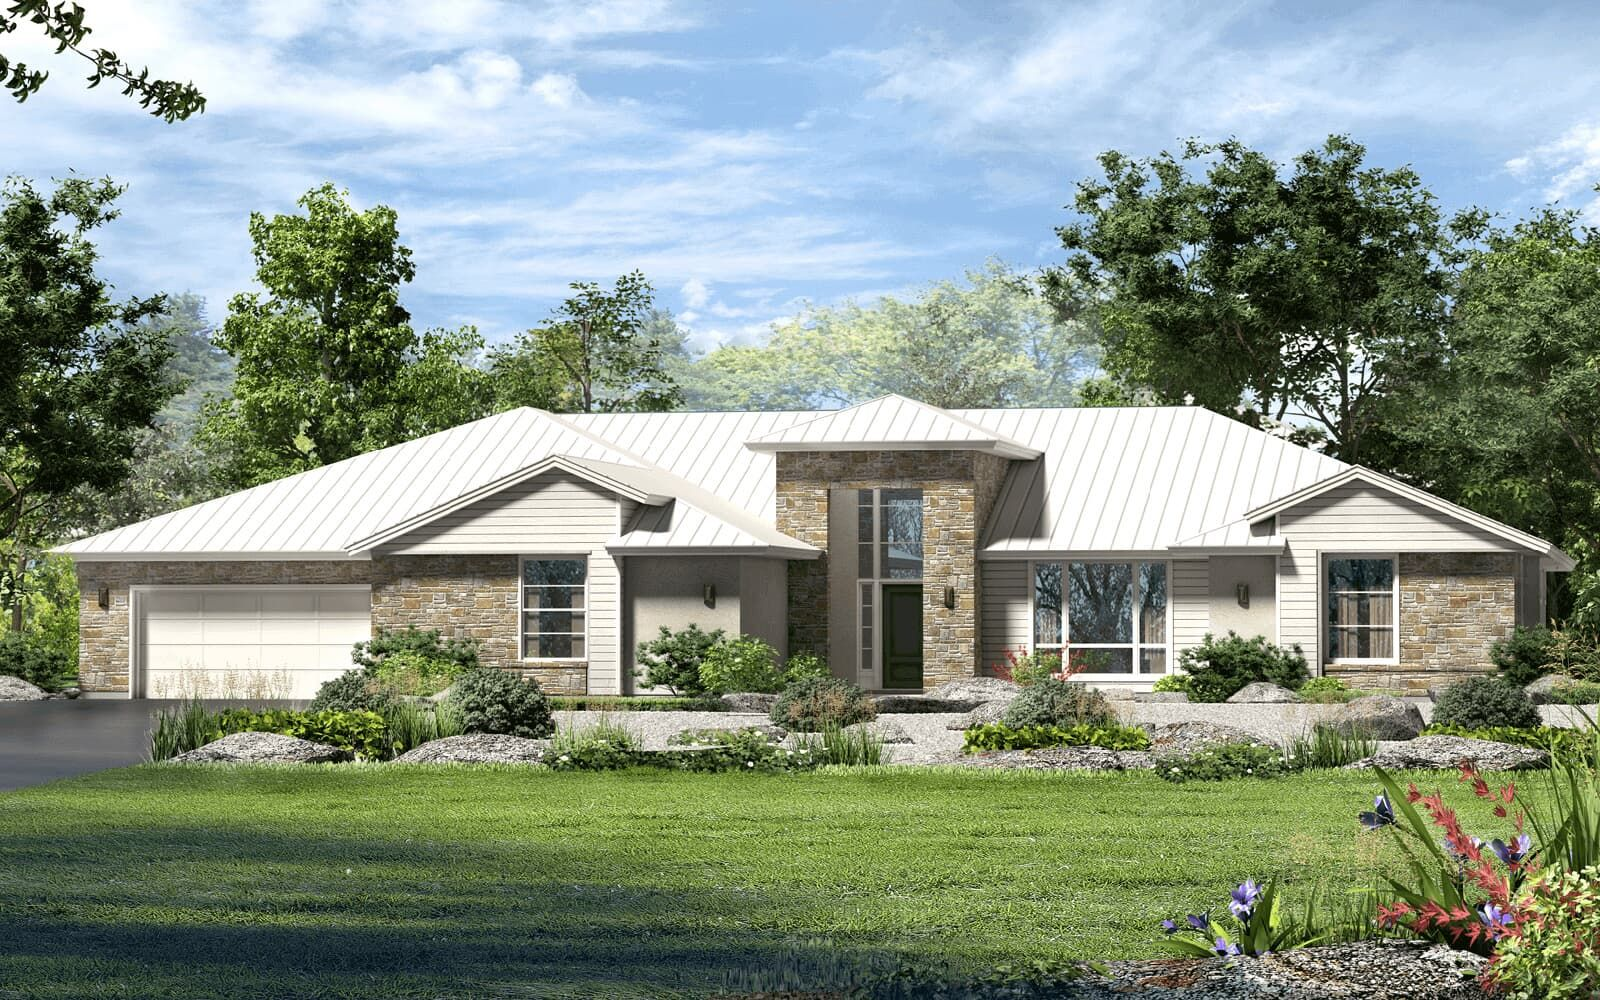 Single Family for Active at Kissing Tree - Traditional Homes - Bard 201 Kissing Tree Lane San Marcos, Texas 78666 United States